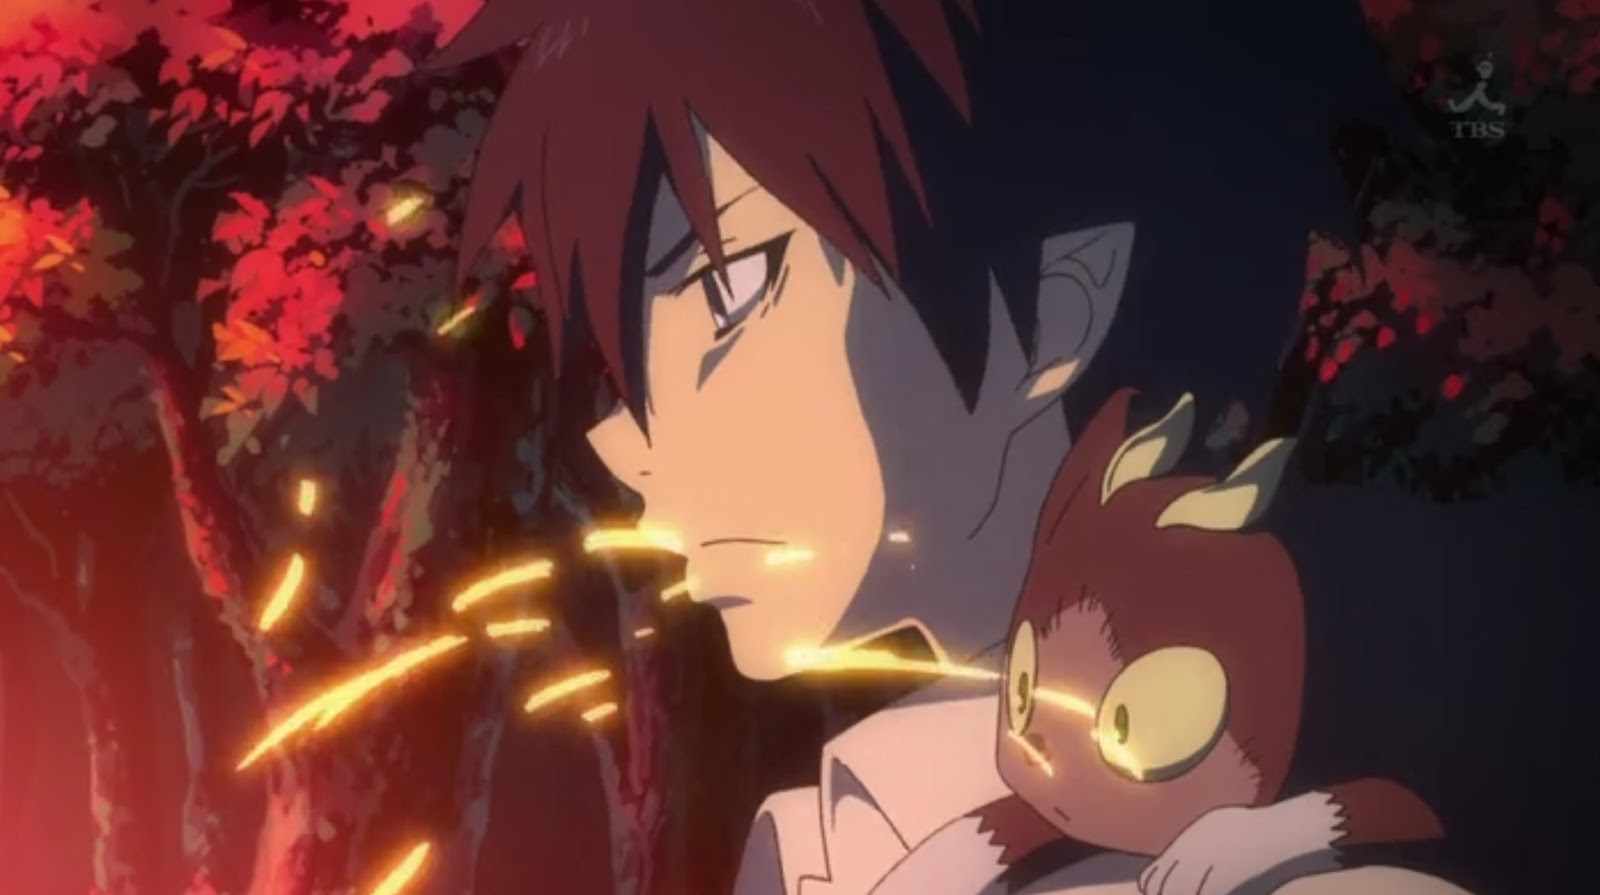 Assistir Ao No Exorcist, Ao No Exorcist Episódio 22 HD, Ao No Exorcist Episódio 22, Ao No Exorcist - Episódio 22 Legendado, Ao No Exorcist Episódio 22,